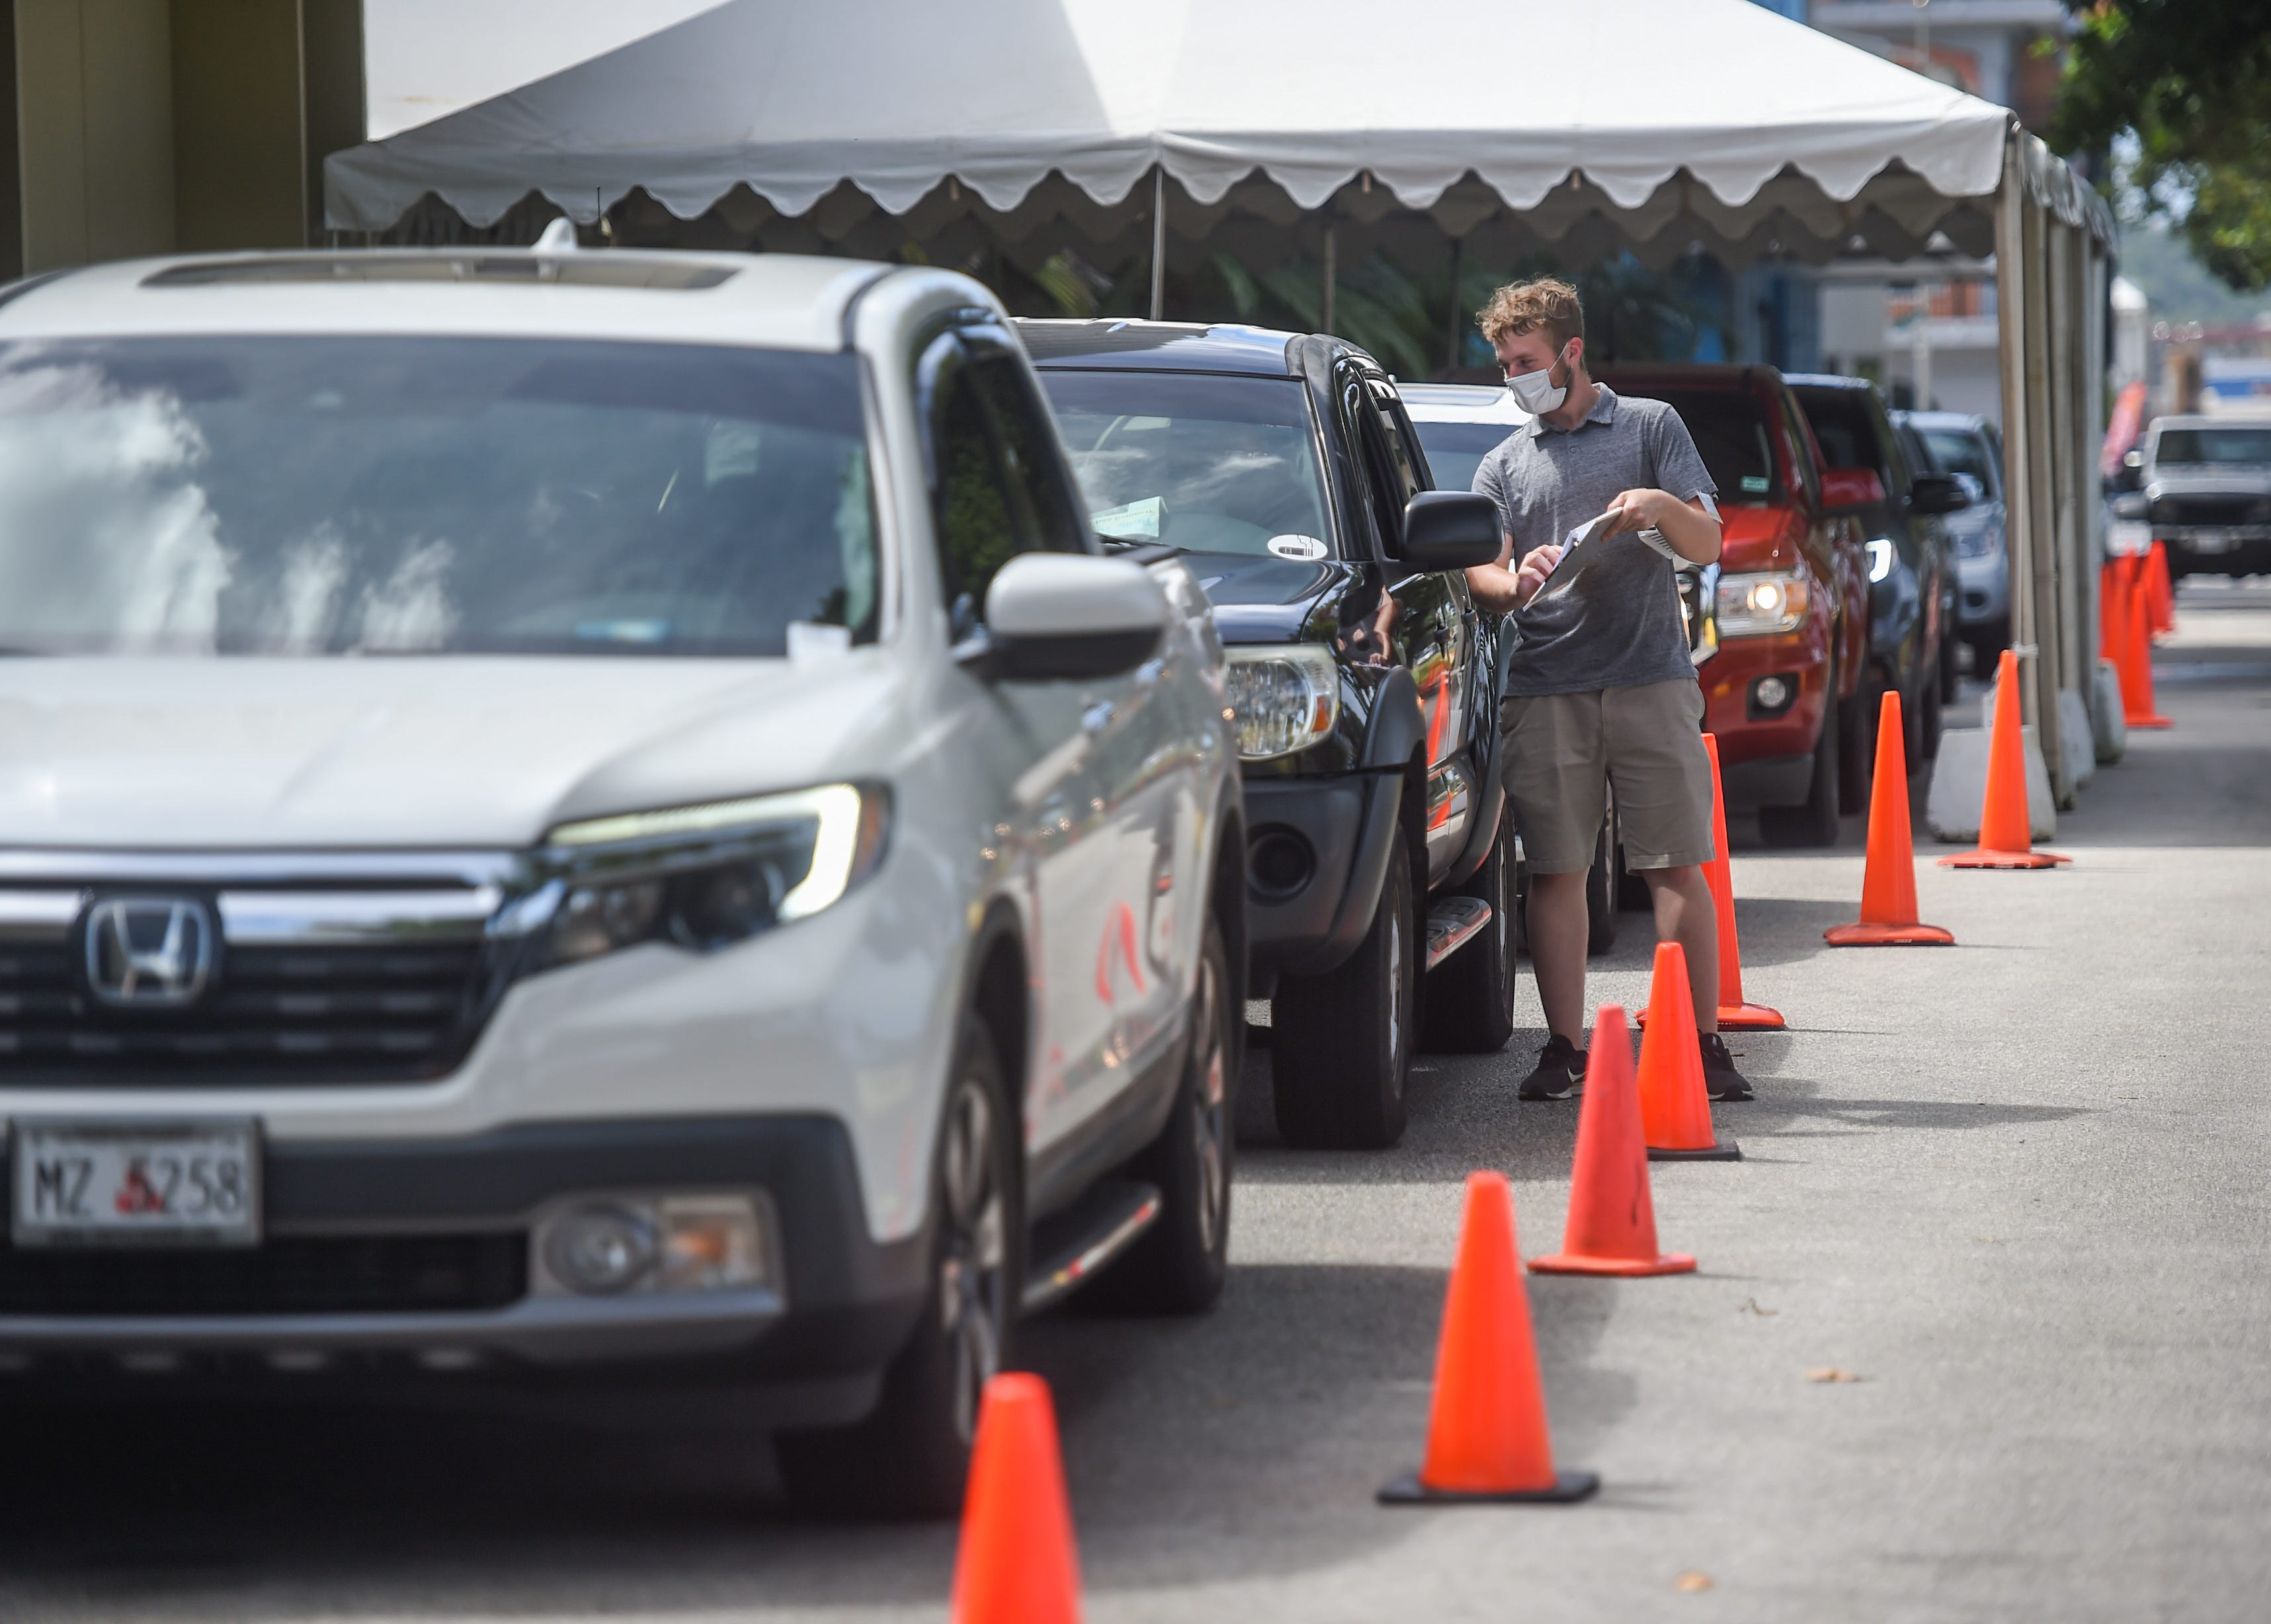 Guam Election Commission employees assist early voters of the 2020 Runoff Election at their curbside voting drive-thru in Hagåtña, Monday.